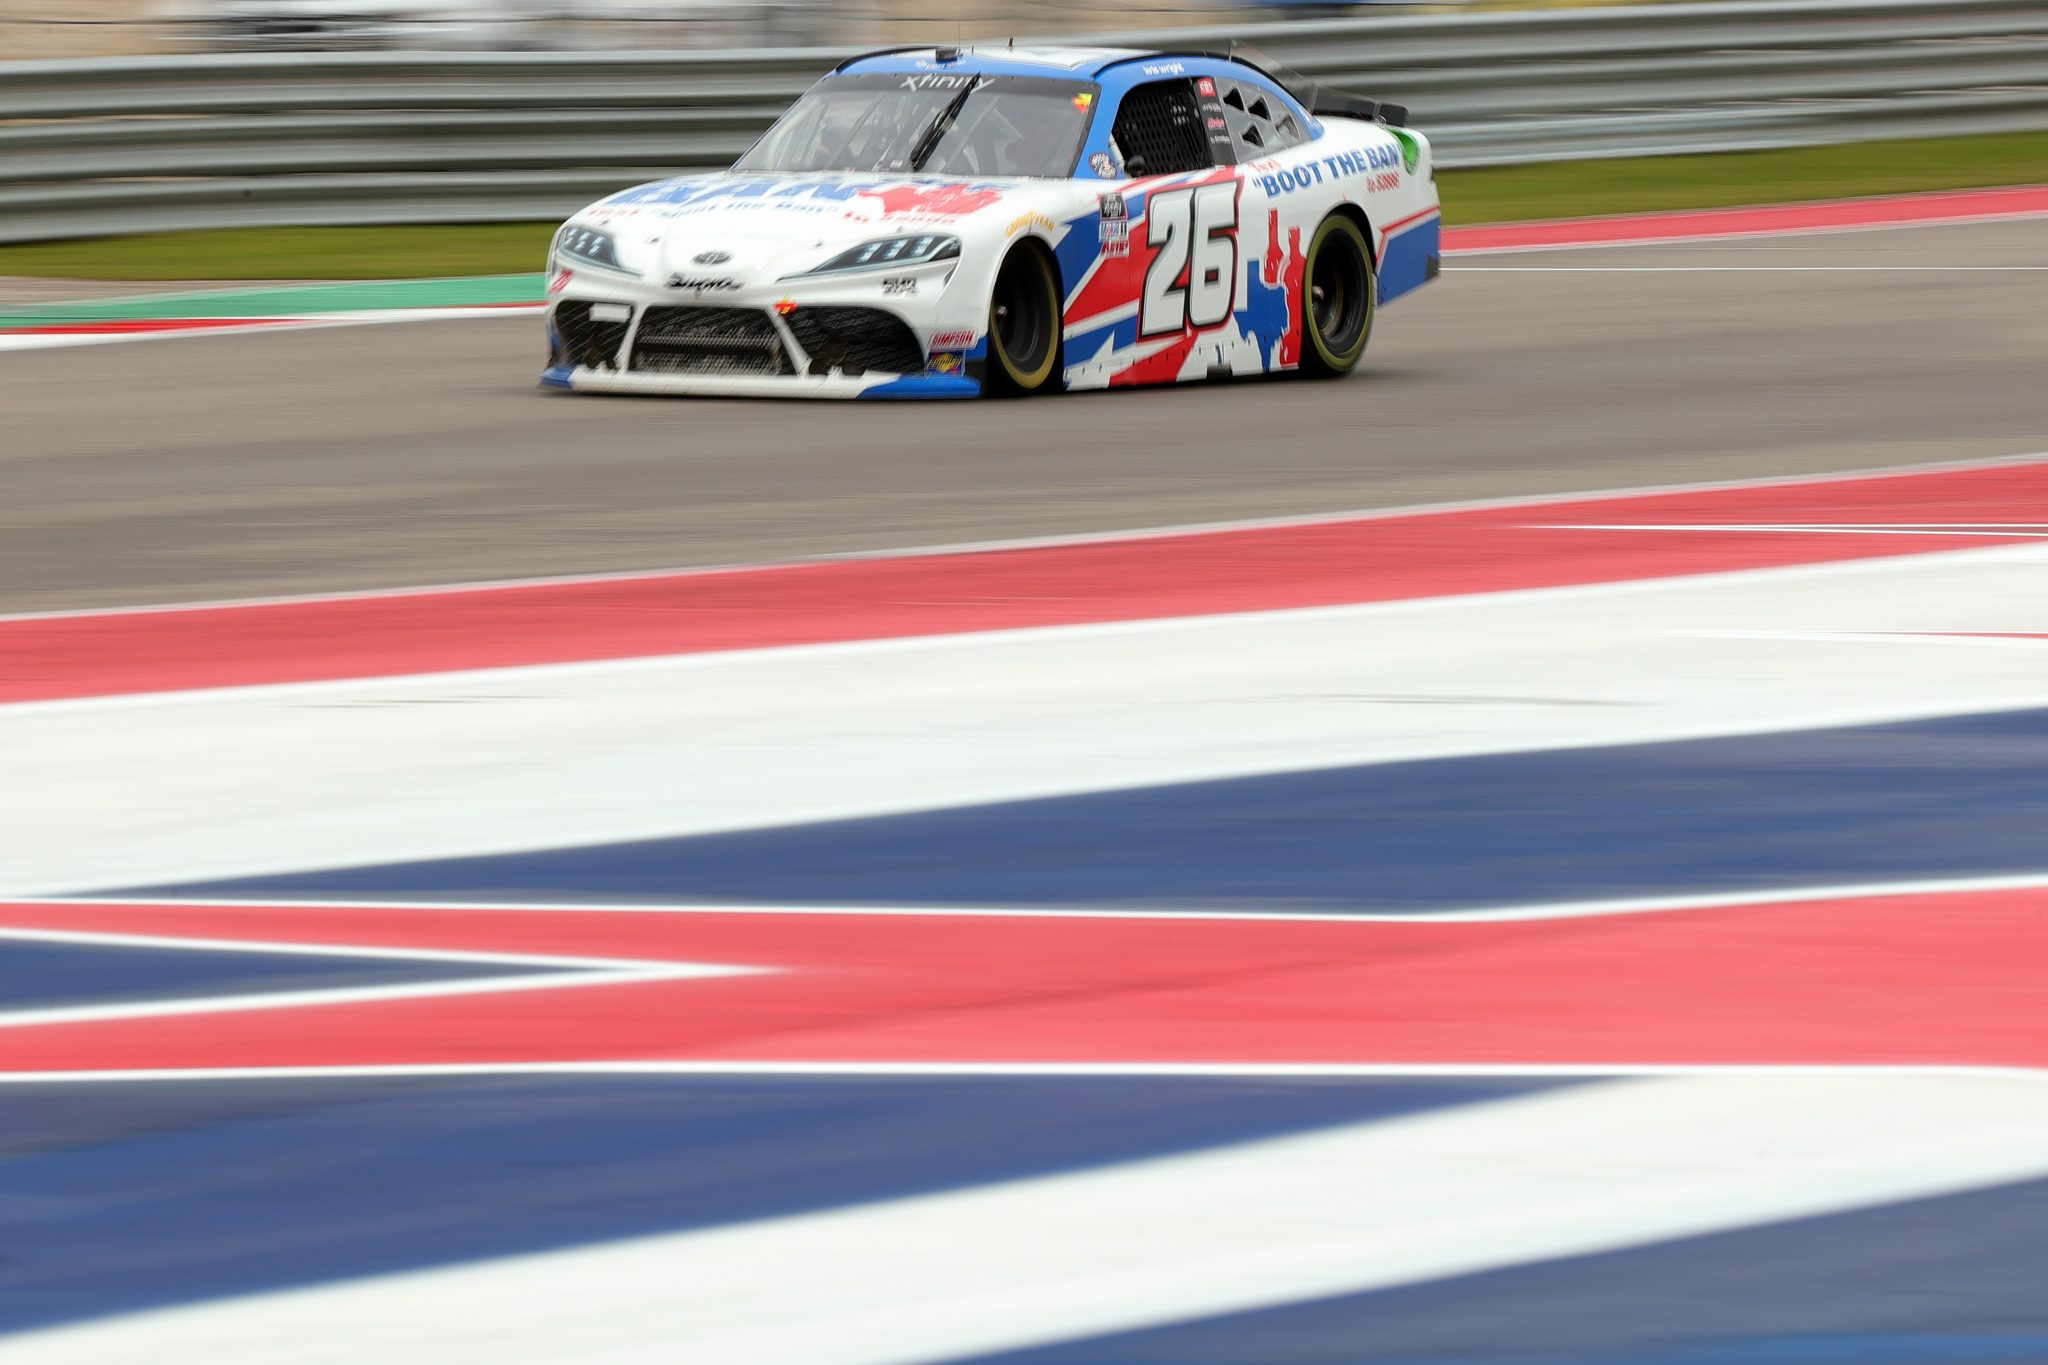 AUSTIN, TEXAS - MAY 22: Kris Wright, driver of the #26 Boot the Ban Toyota, drives during the NASCAR Xfinity Series Pit Boss 250 at Circuit of The Americas on May 22, 2021 in Austin, Texas. (Photo by Carmen Mandato/Getty Images) | Getty Images